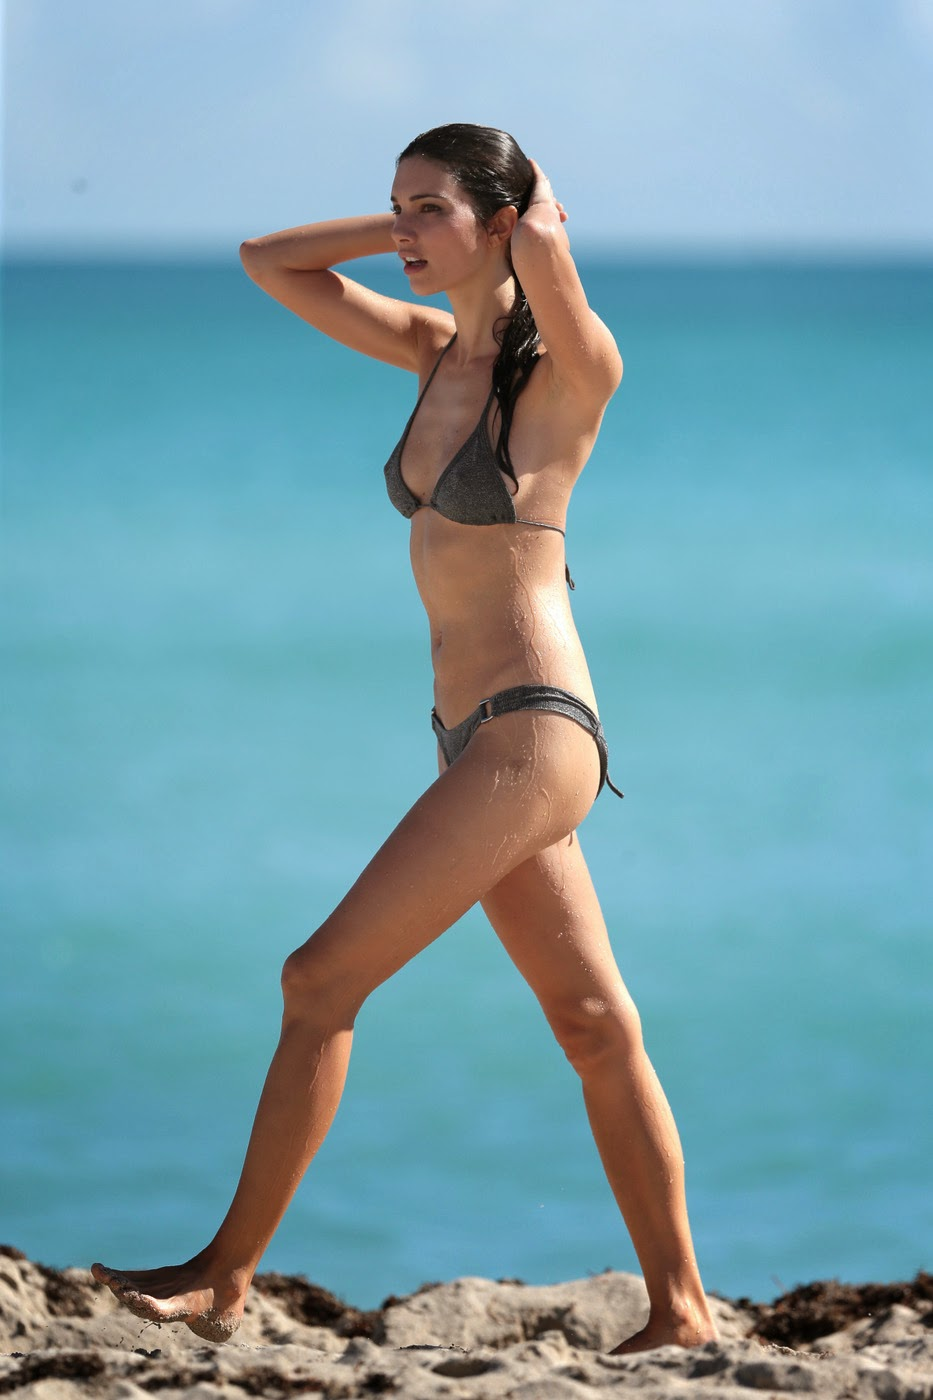 fashion model Teresa Moore bikini on the beach photo 8